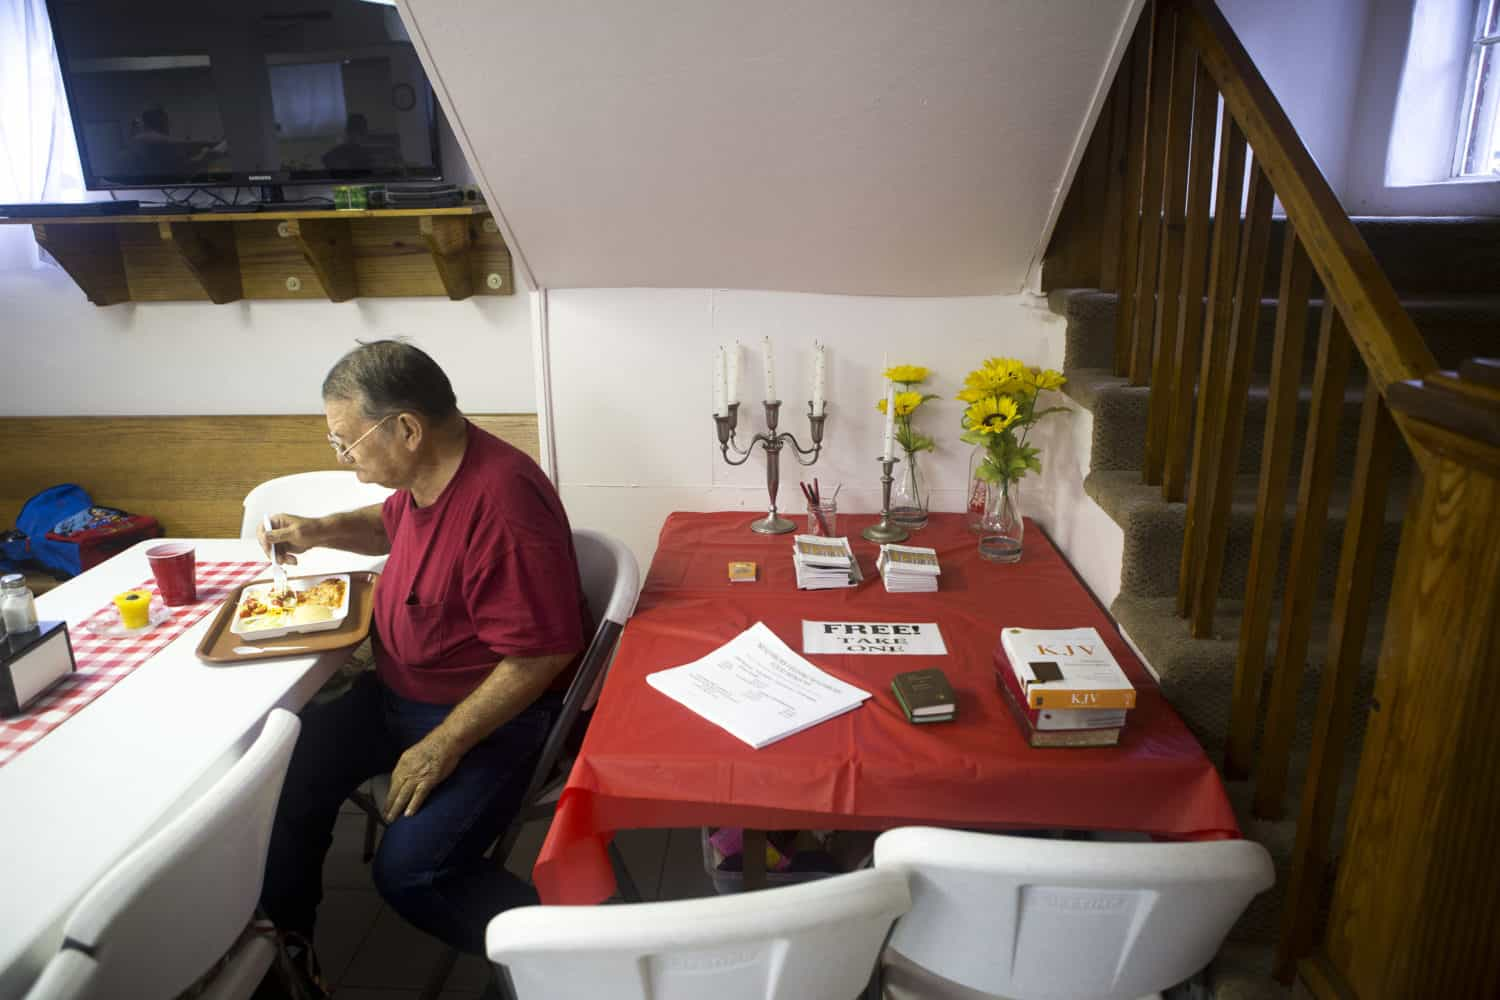 a man experiencing food insecurity sits eating a a meal in a takeout container